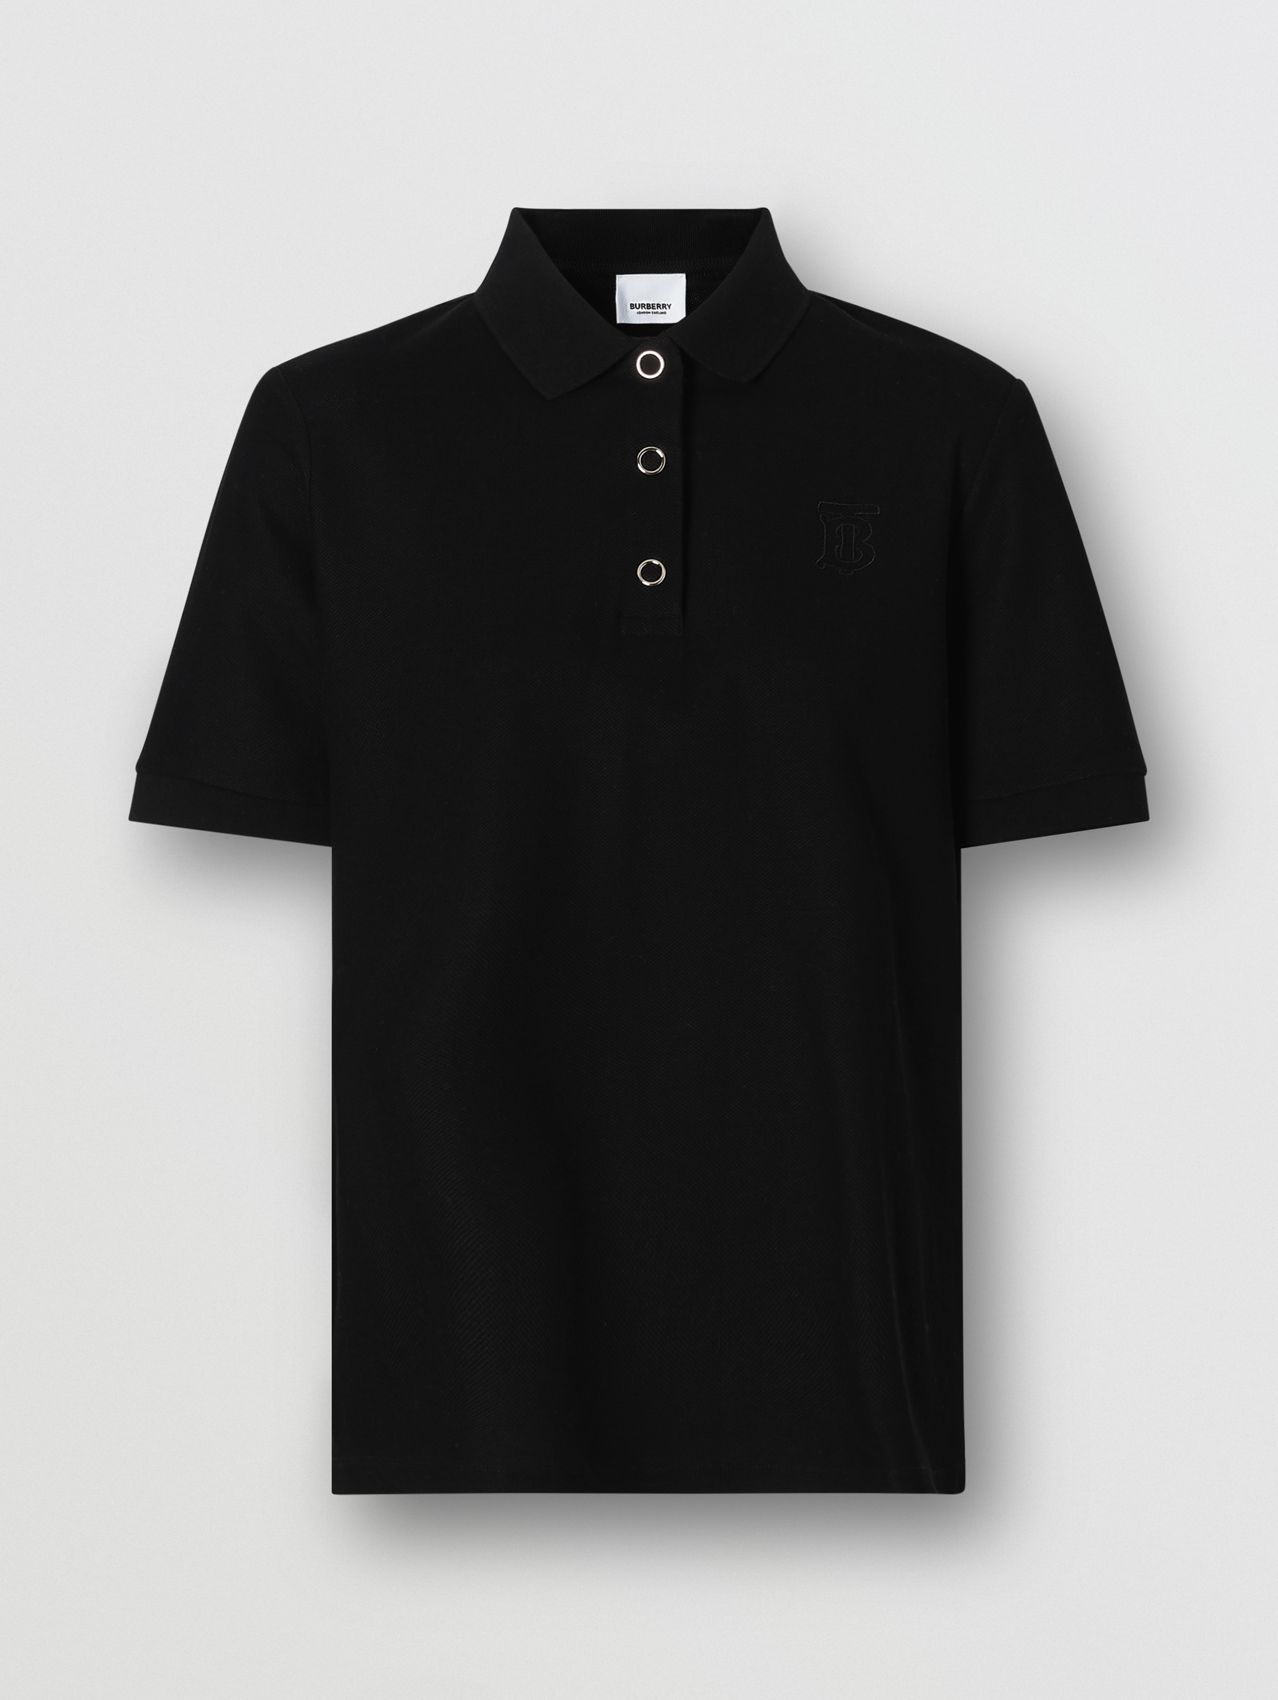 Monogram Motif Cotton Piqué Polo Shirt in Black